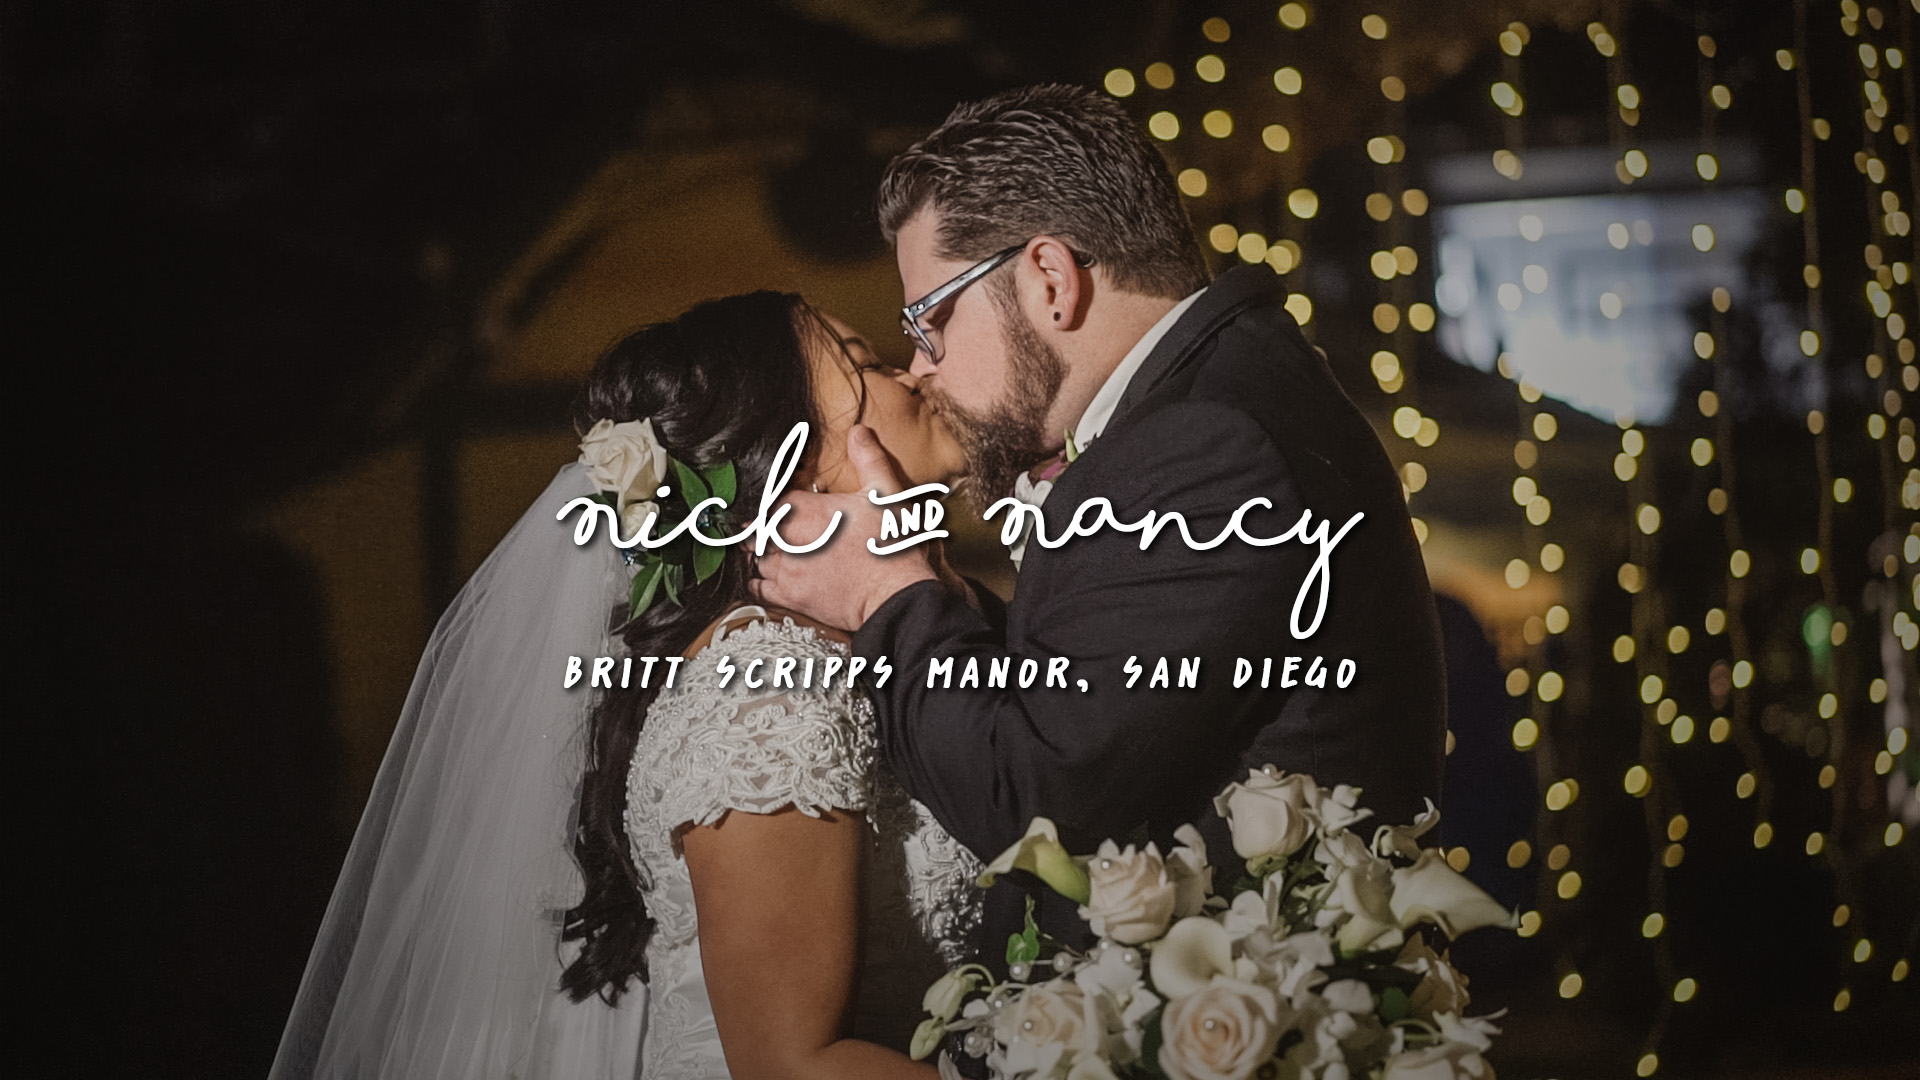 Nick + Nancy | San Diego, California | Britt Scripps Manor